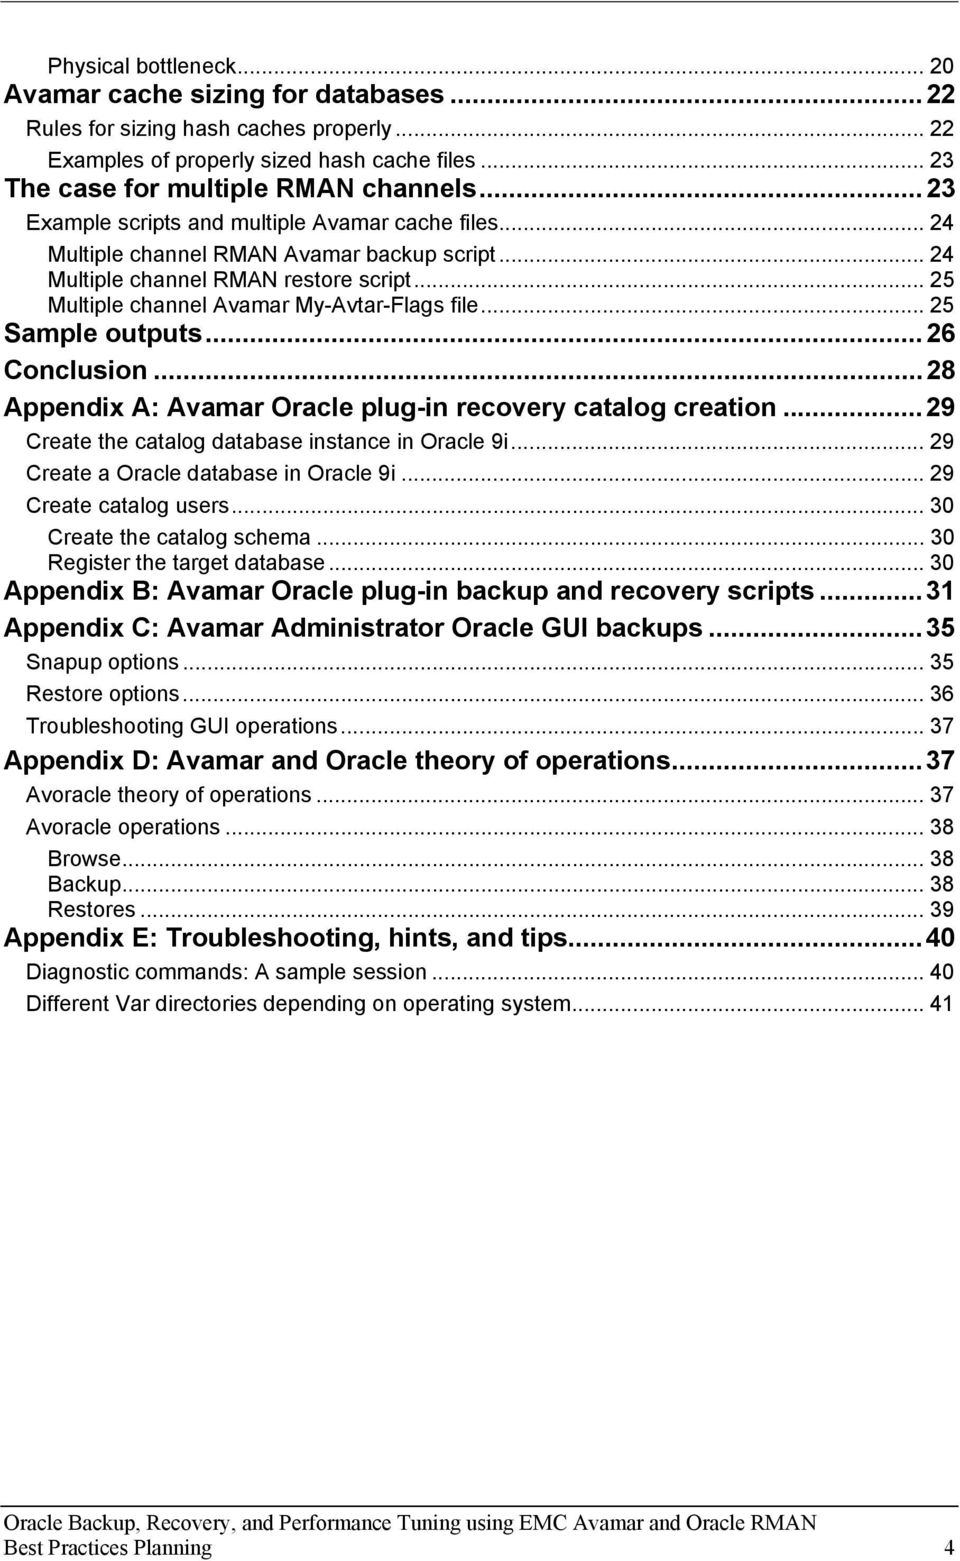 .. 25 Sample outputs...26 Conclusion...28 Appendix A: Avamar Oracle plug-in recovery catalog creation...29 Create the catalog database instance in Oracle 9i... 29 Create a Oracle database in Oracle 9i.